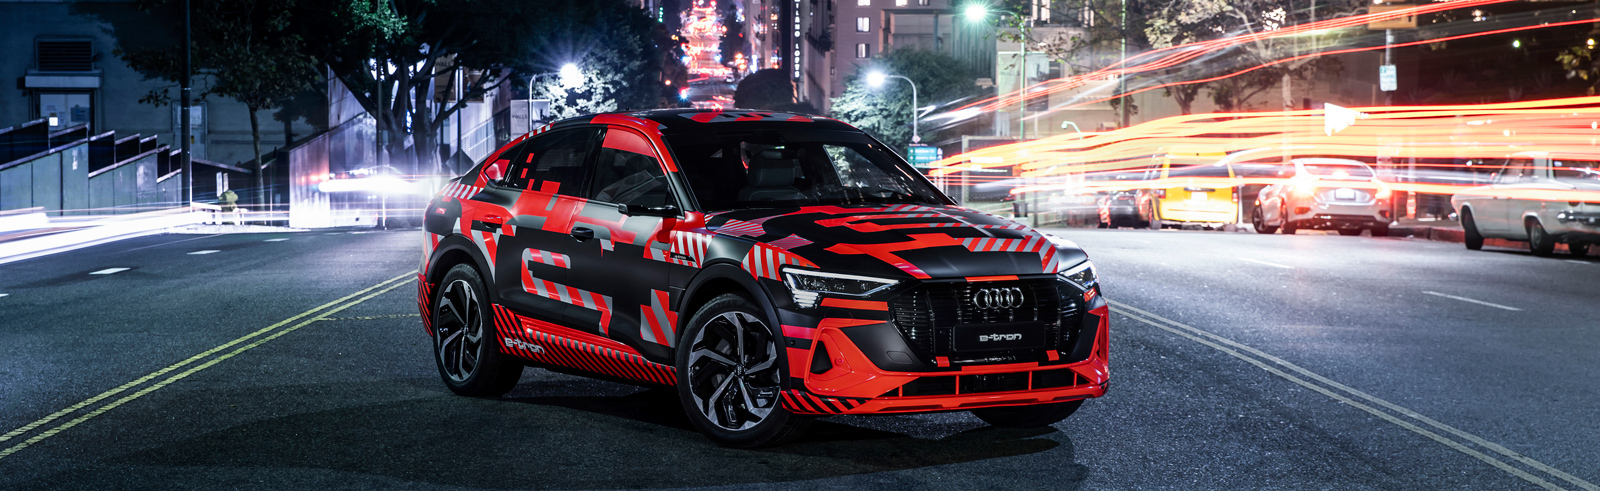 The Audi e-tron Sportback goes official with up to 300 kW of power and up to 446 km of range